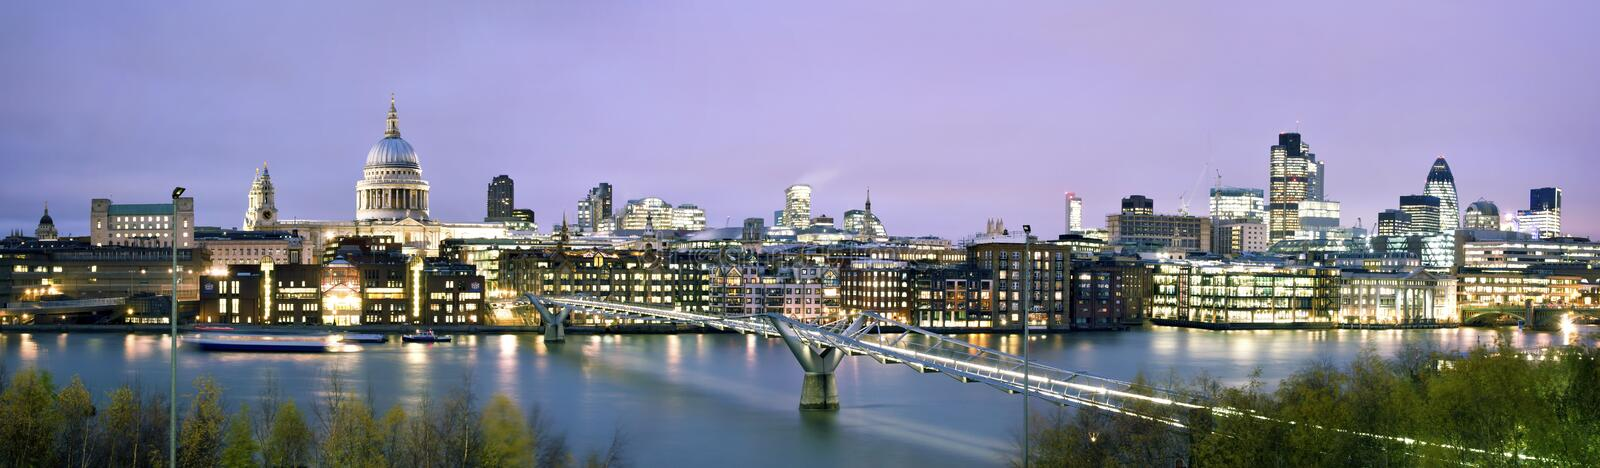 City of London at twilight. Panoramic picture of St. Paul's Cathedral, Millenium Bridge and the Financial District at twilight stock photo